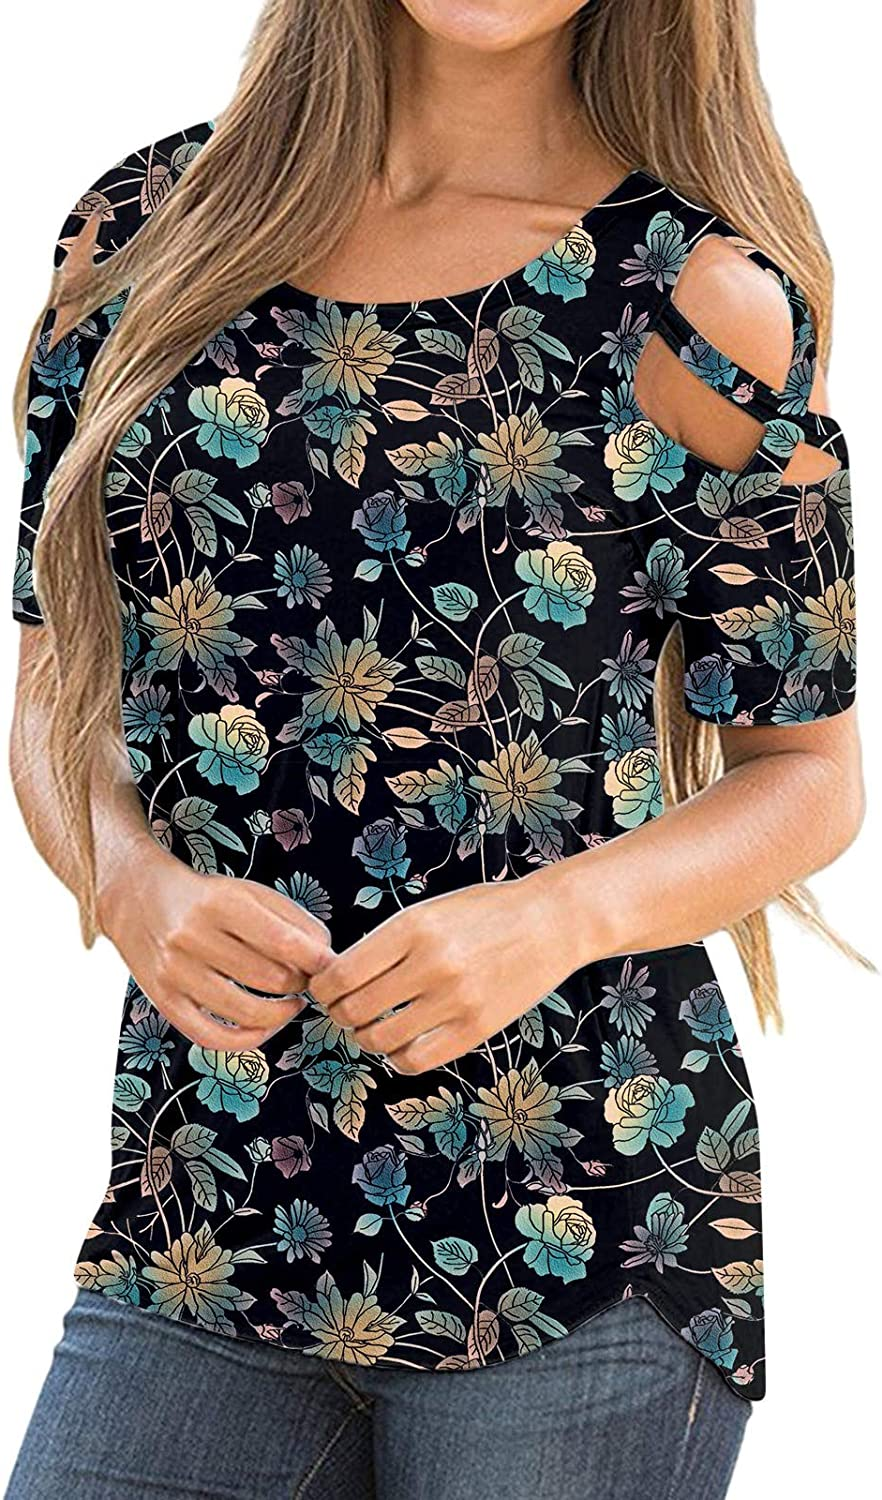 Aukbays Womens T-Shirts Women Short Sleeve Strappy Cold Shoulder Round Neck Floral Tops for Women Shirt Blouses Tunic